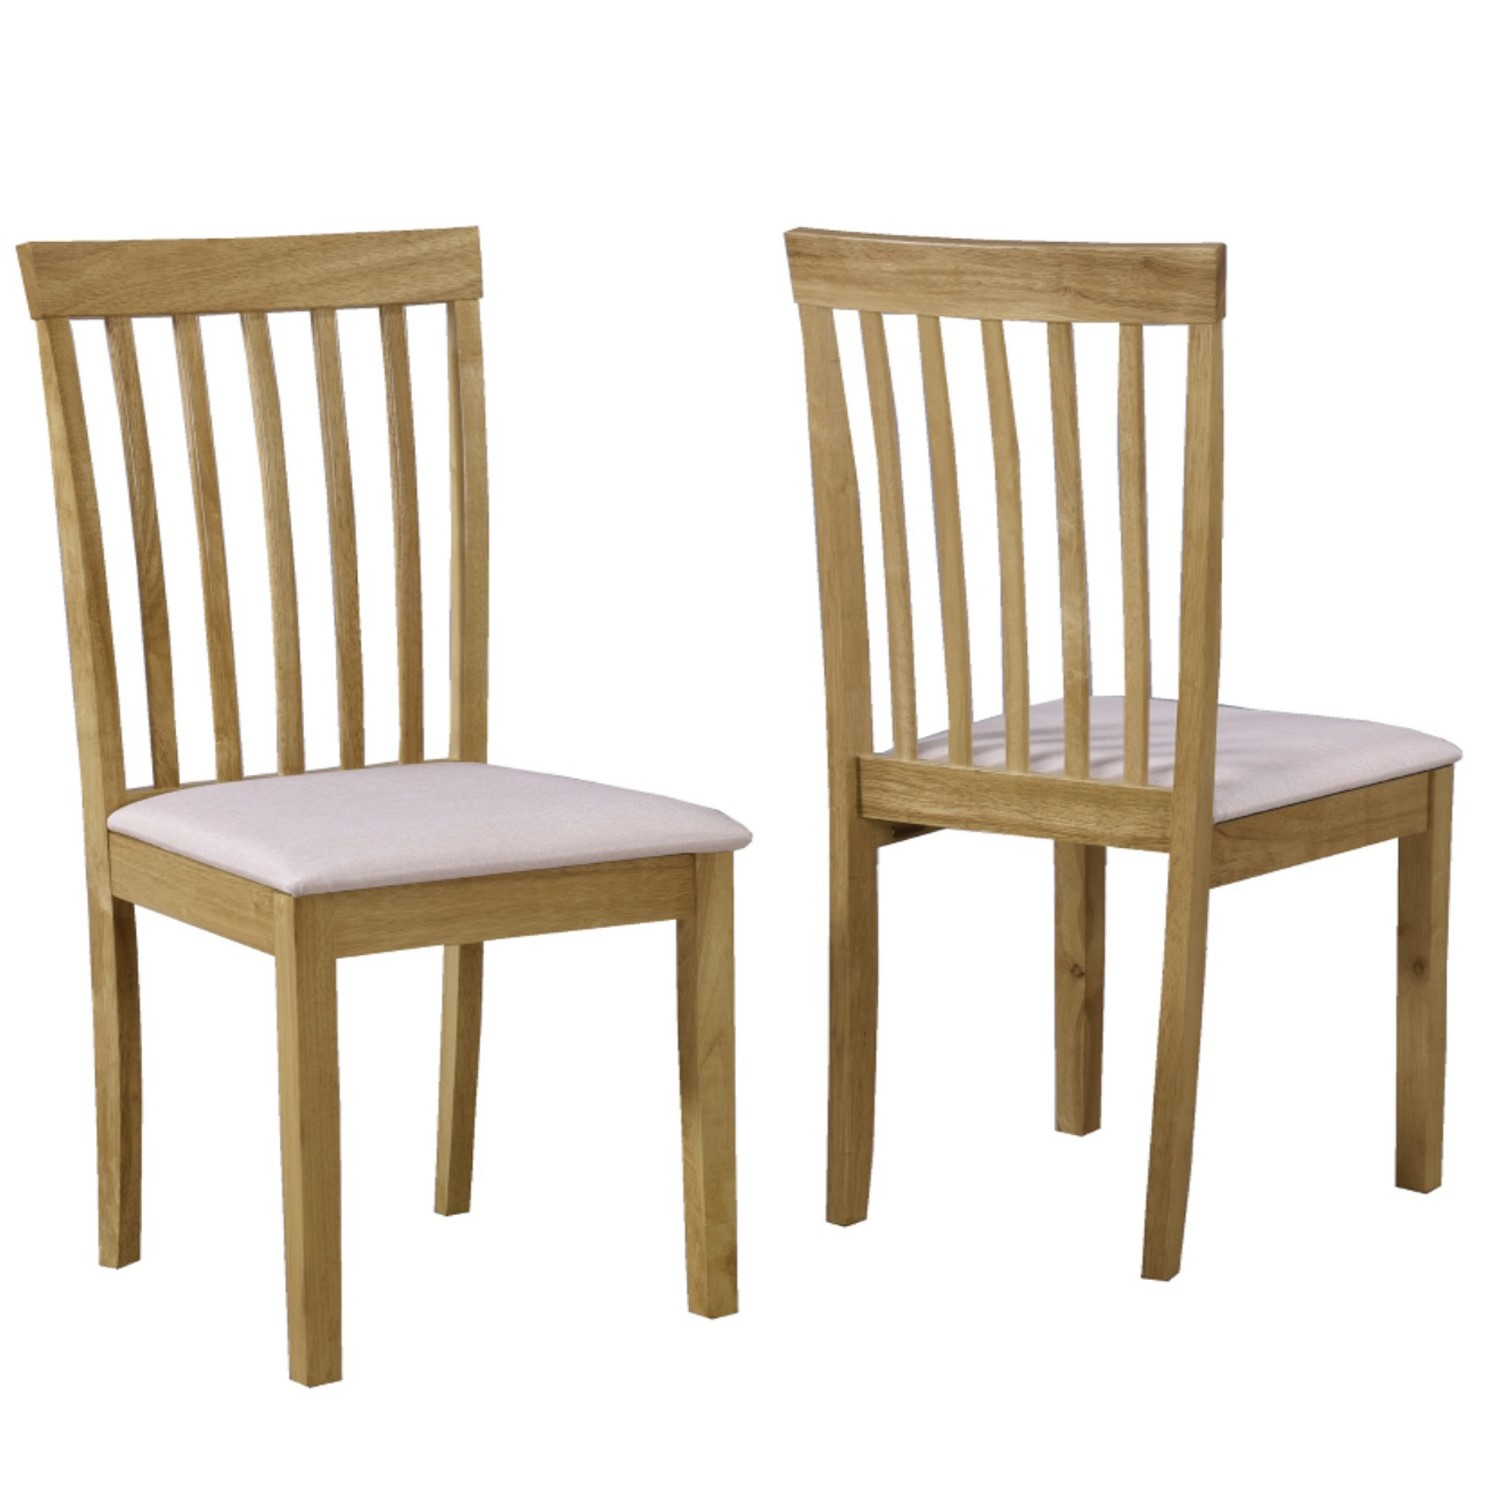 Set of 2 Wooden Dining Chairs with Cream Fabric Seats New Haven